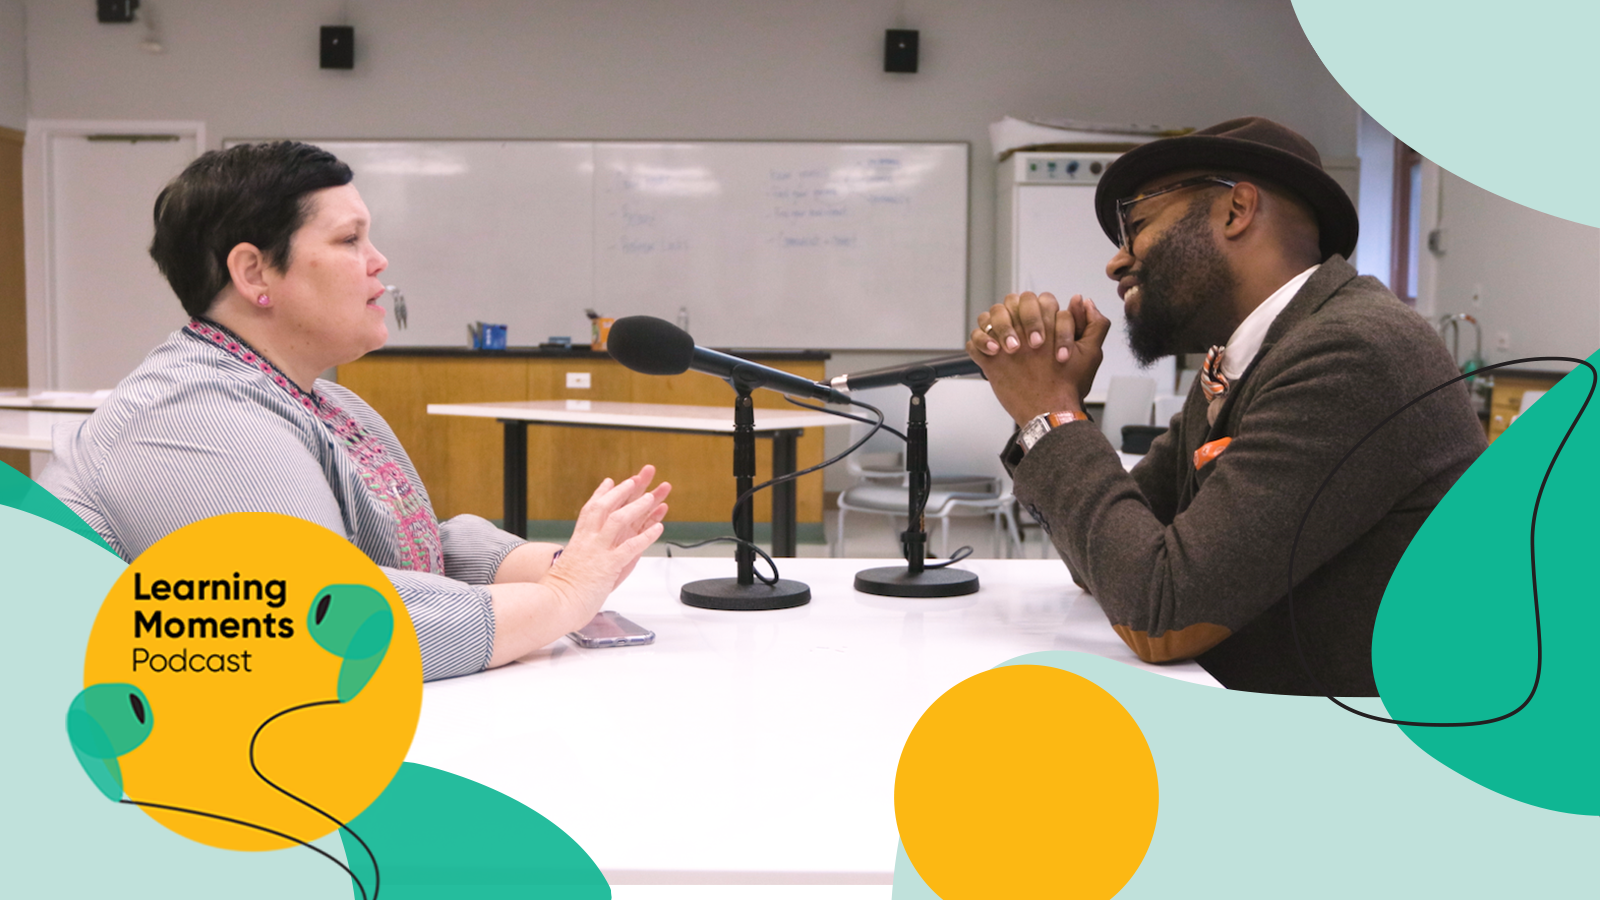 Podcast: On Being a POC in Academic Spaces Feat. Dr. Chris Emdin on Teachers in America